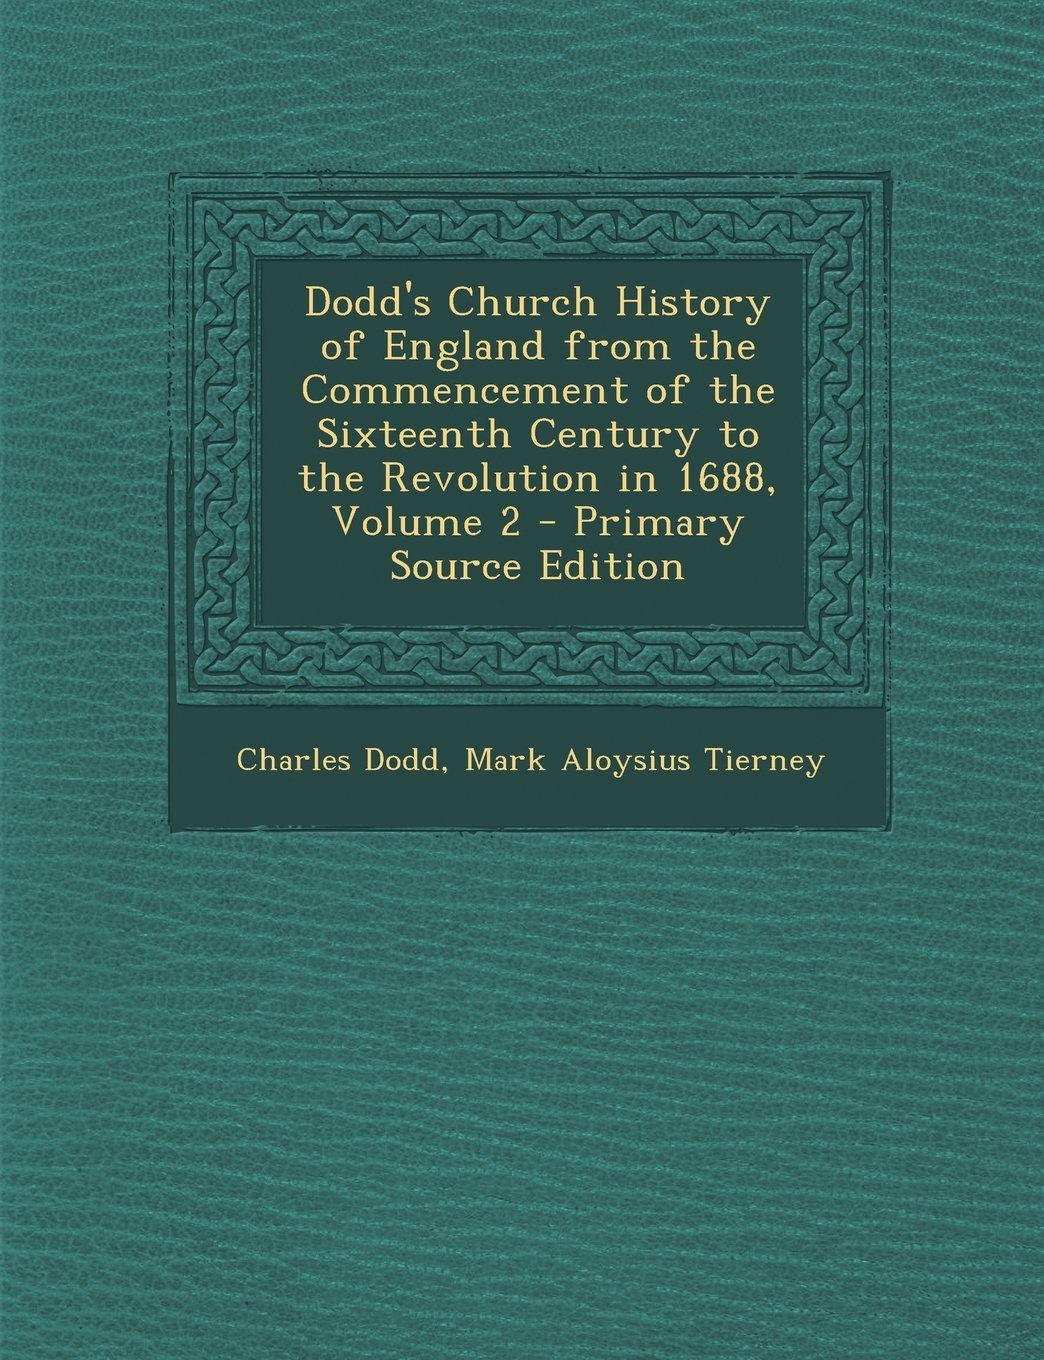 Dodd's Church History of England from the Commencement of the Sixteenth Century to the Revolution in 1688, Volume 2 ebook